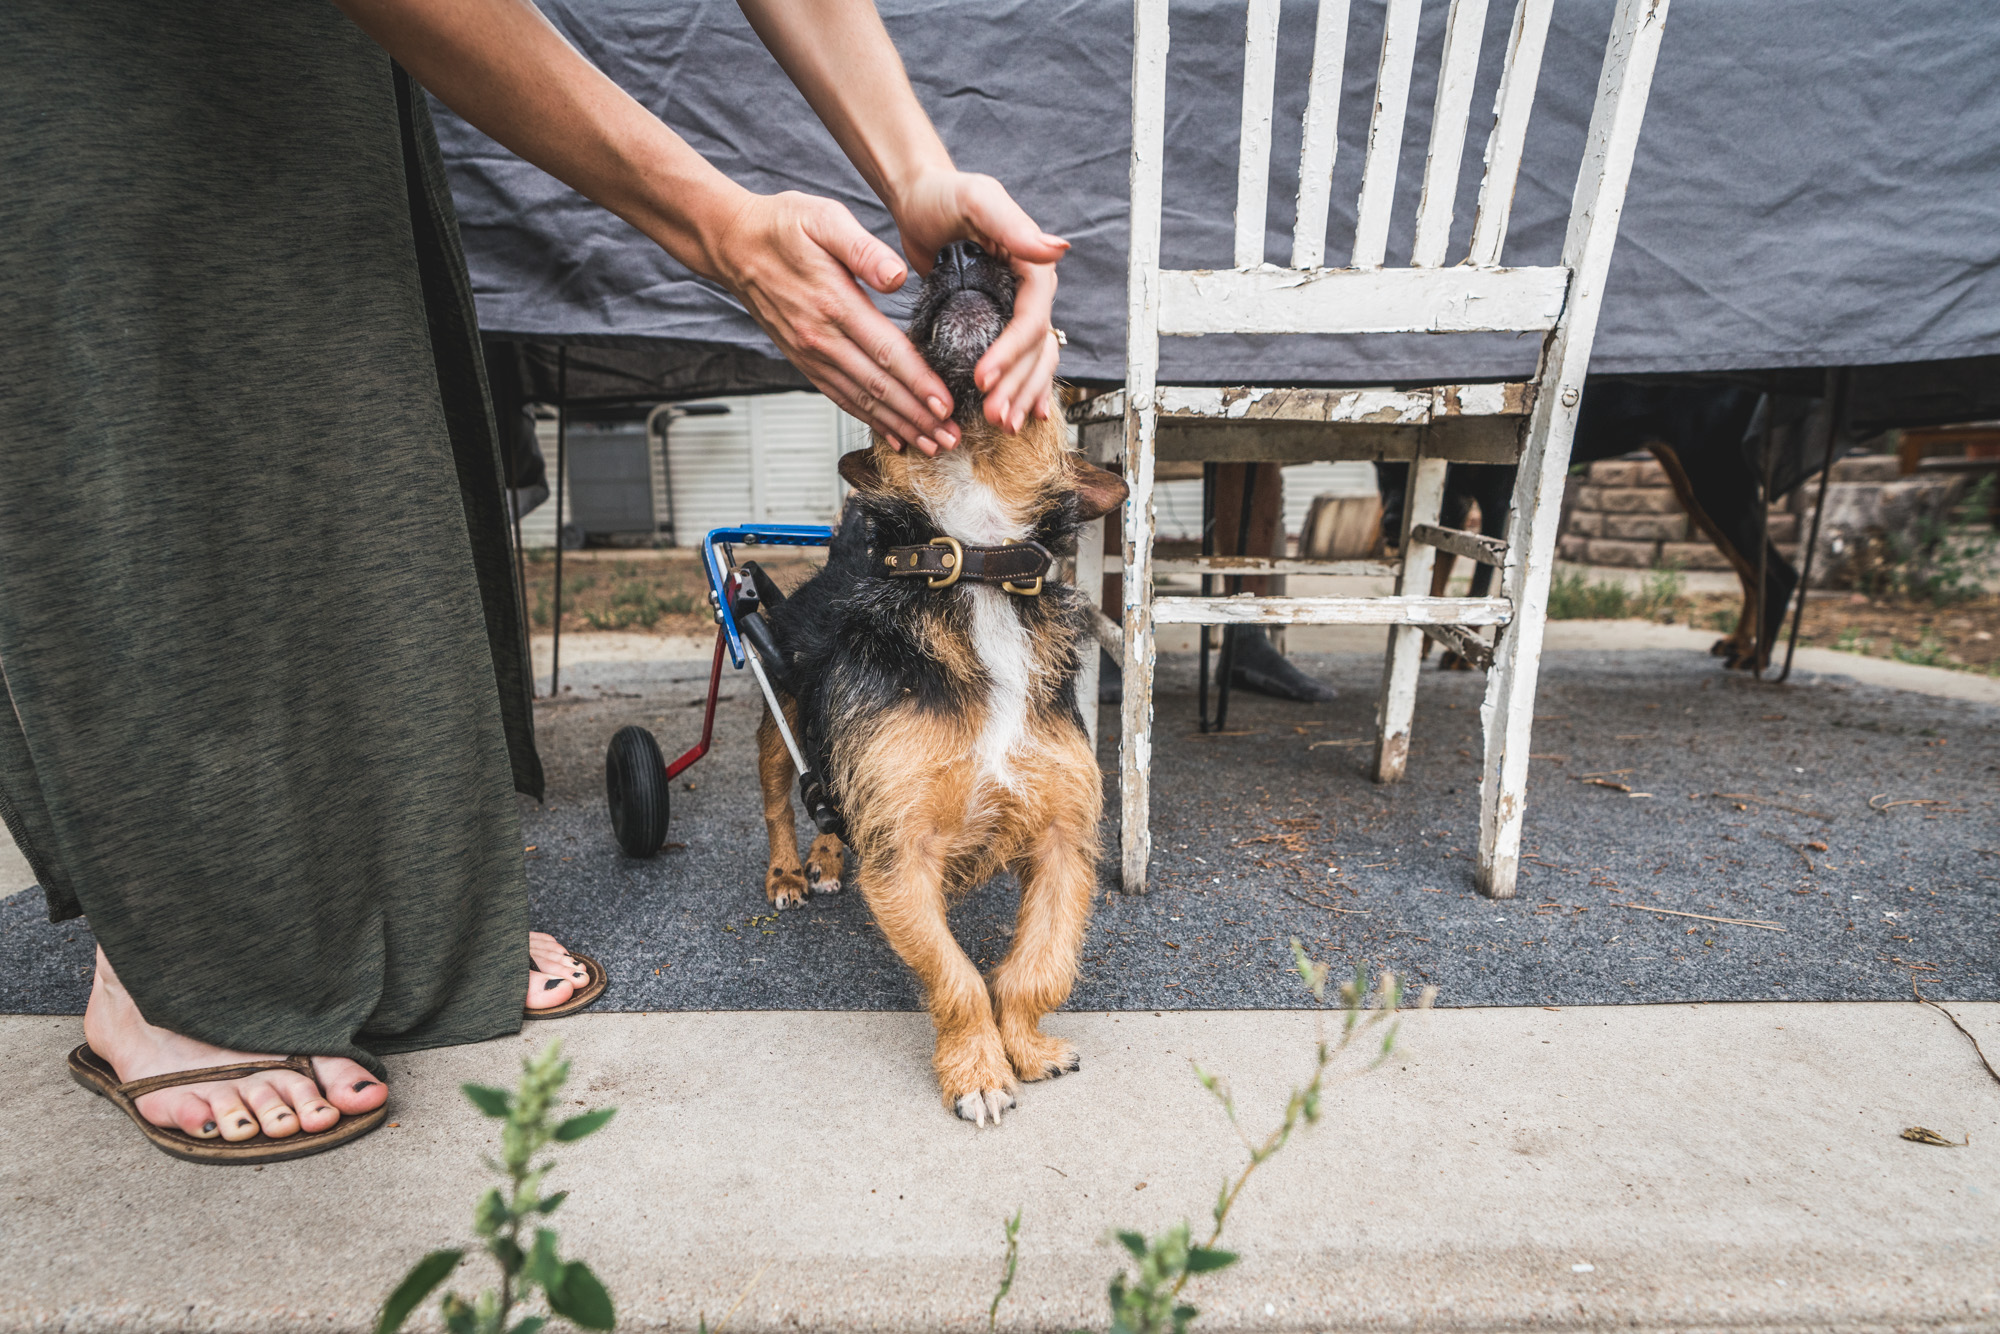 Tiny dog in a wheelchair looks up as his owner rubs his face